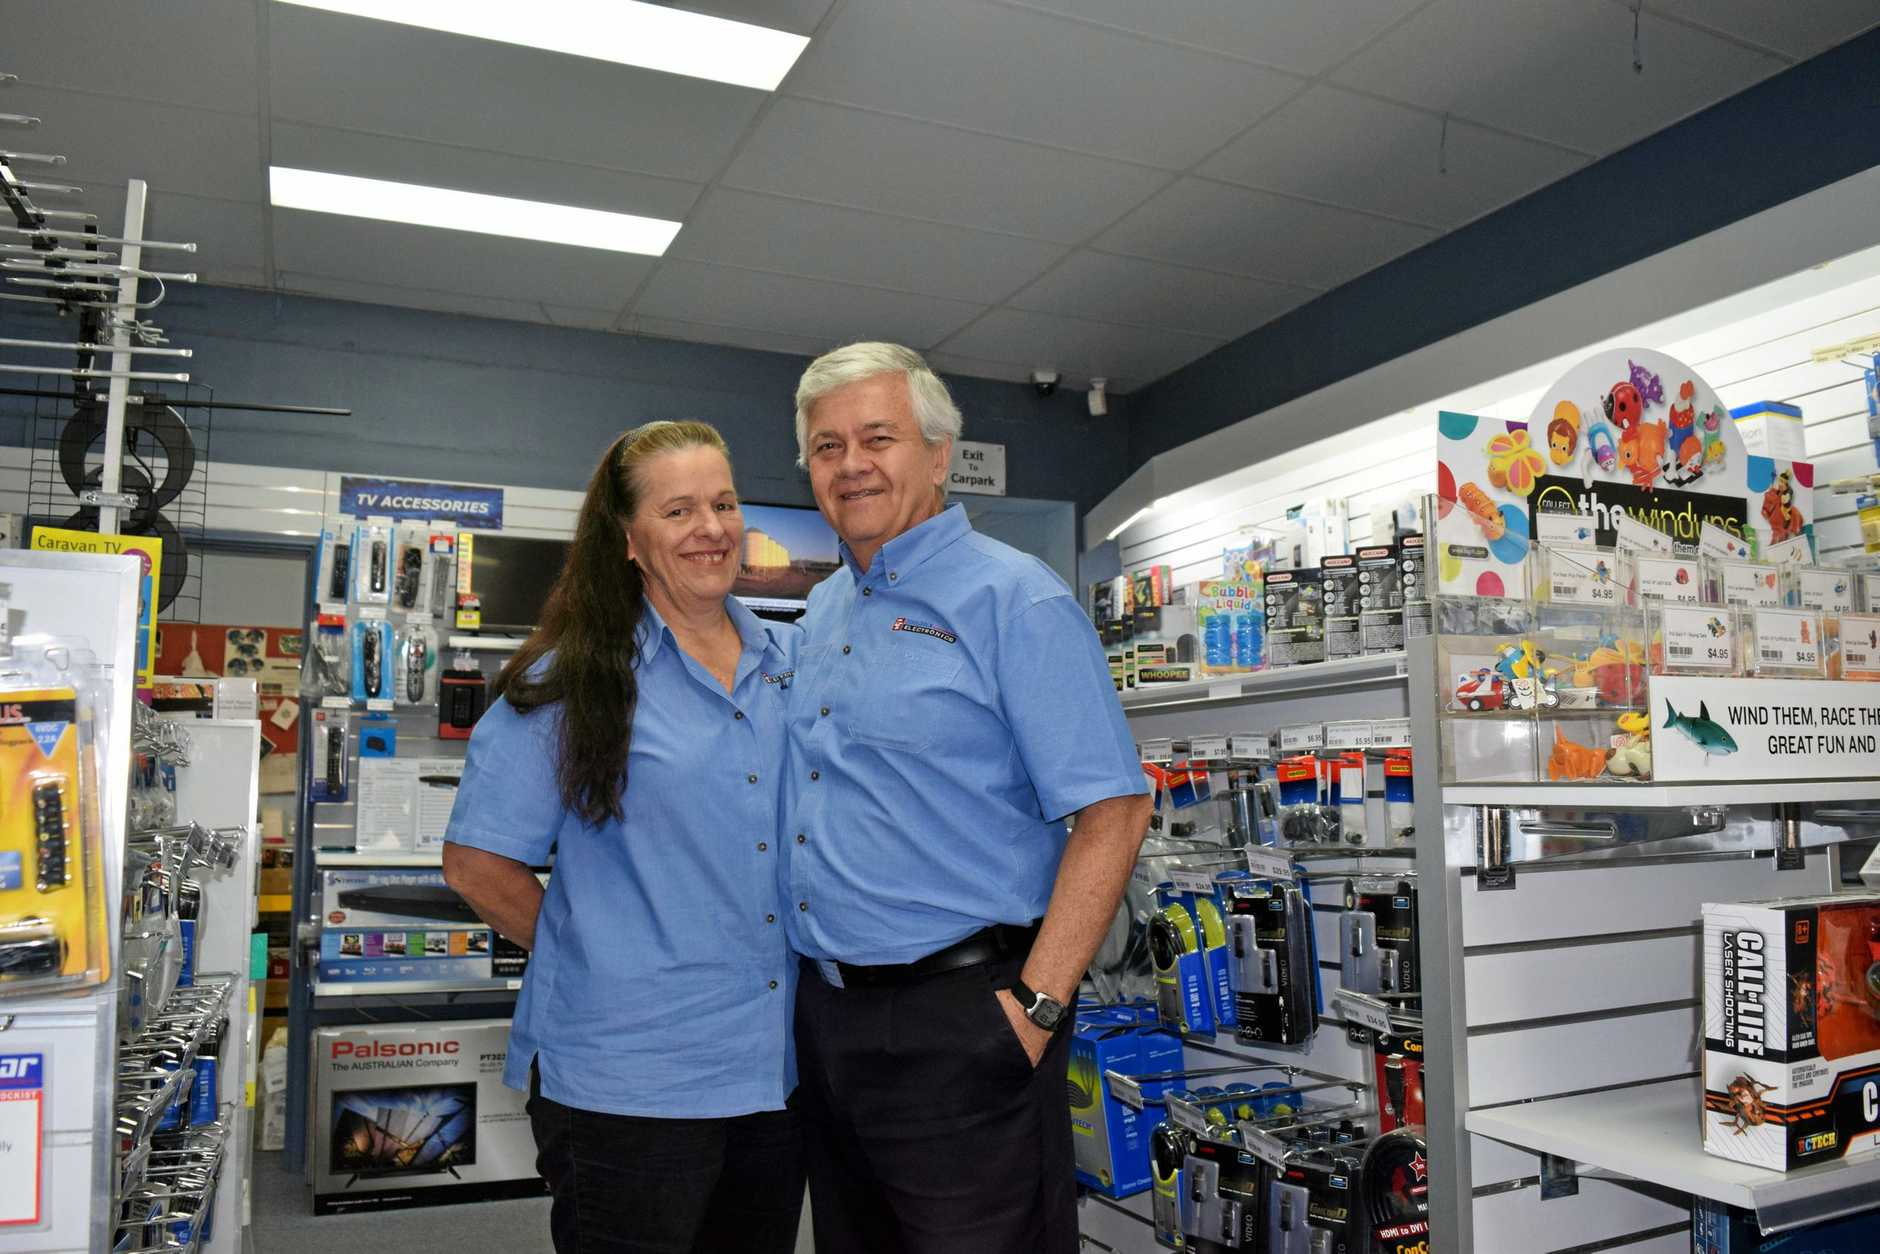 Cindy and Paul Medway close Cooloola Electronics after more than 24 years in Gympie.